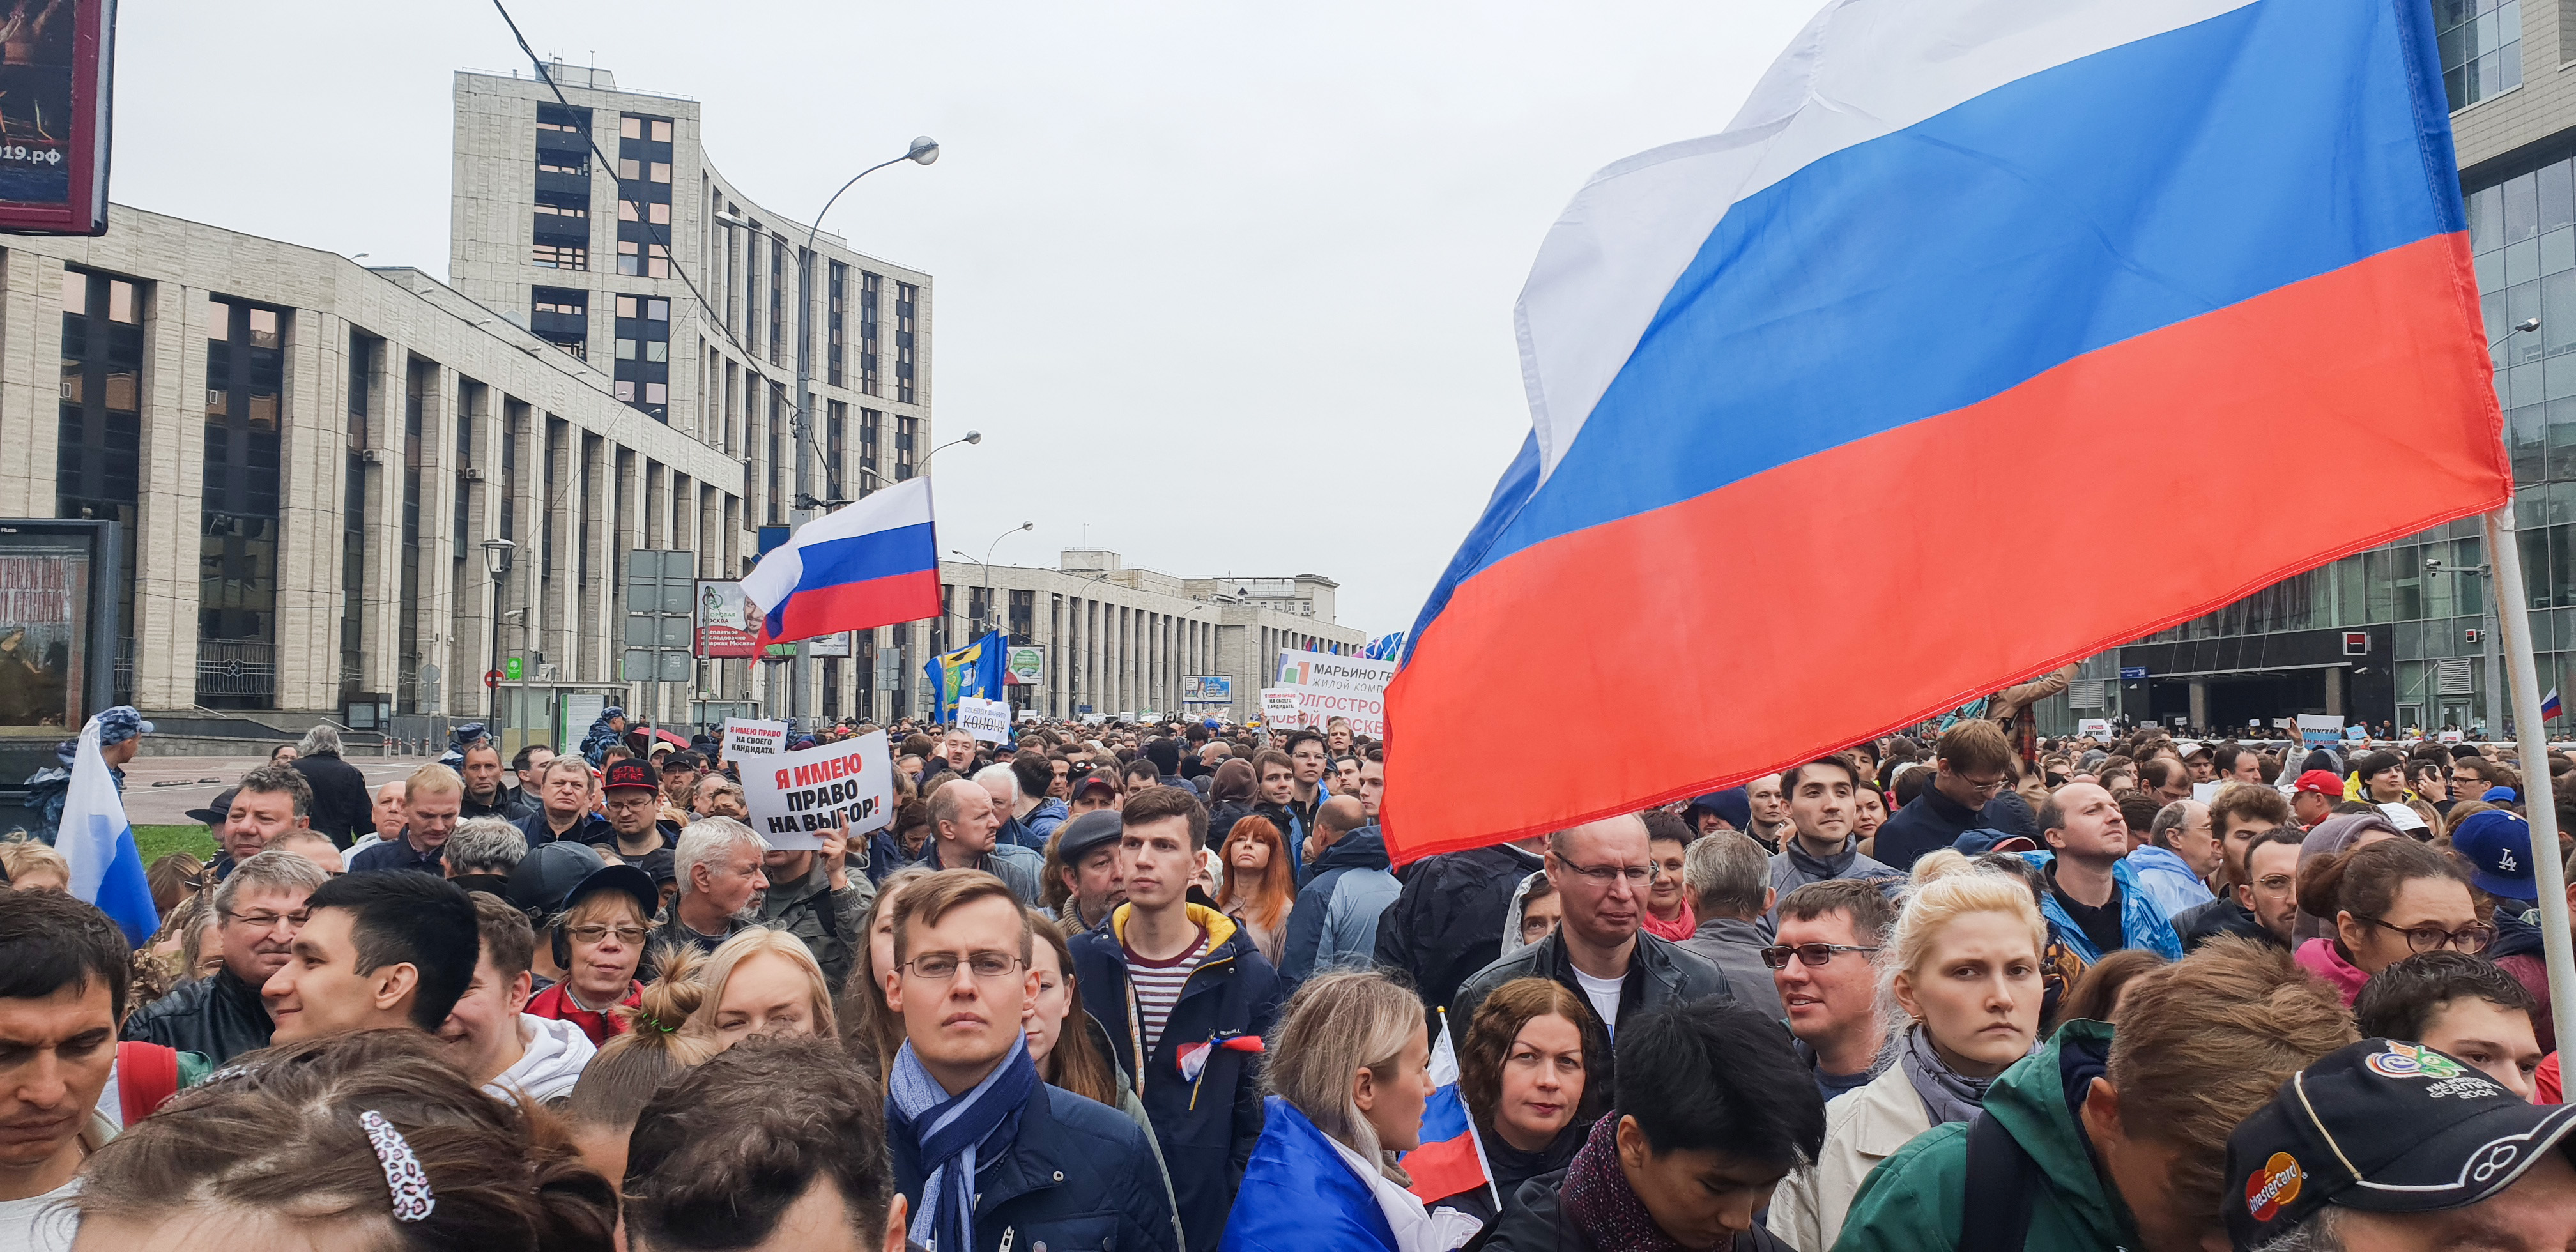 The pro-democracy protests rocking Moscow, explained